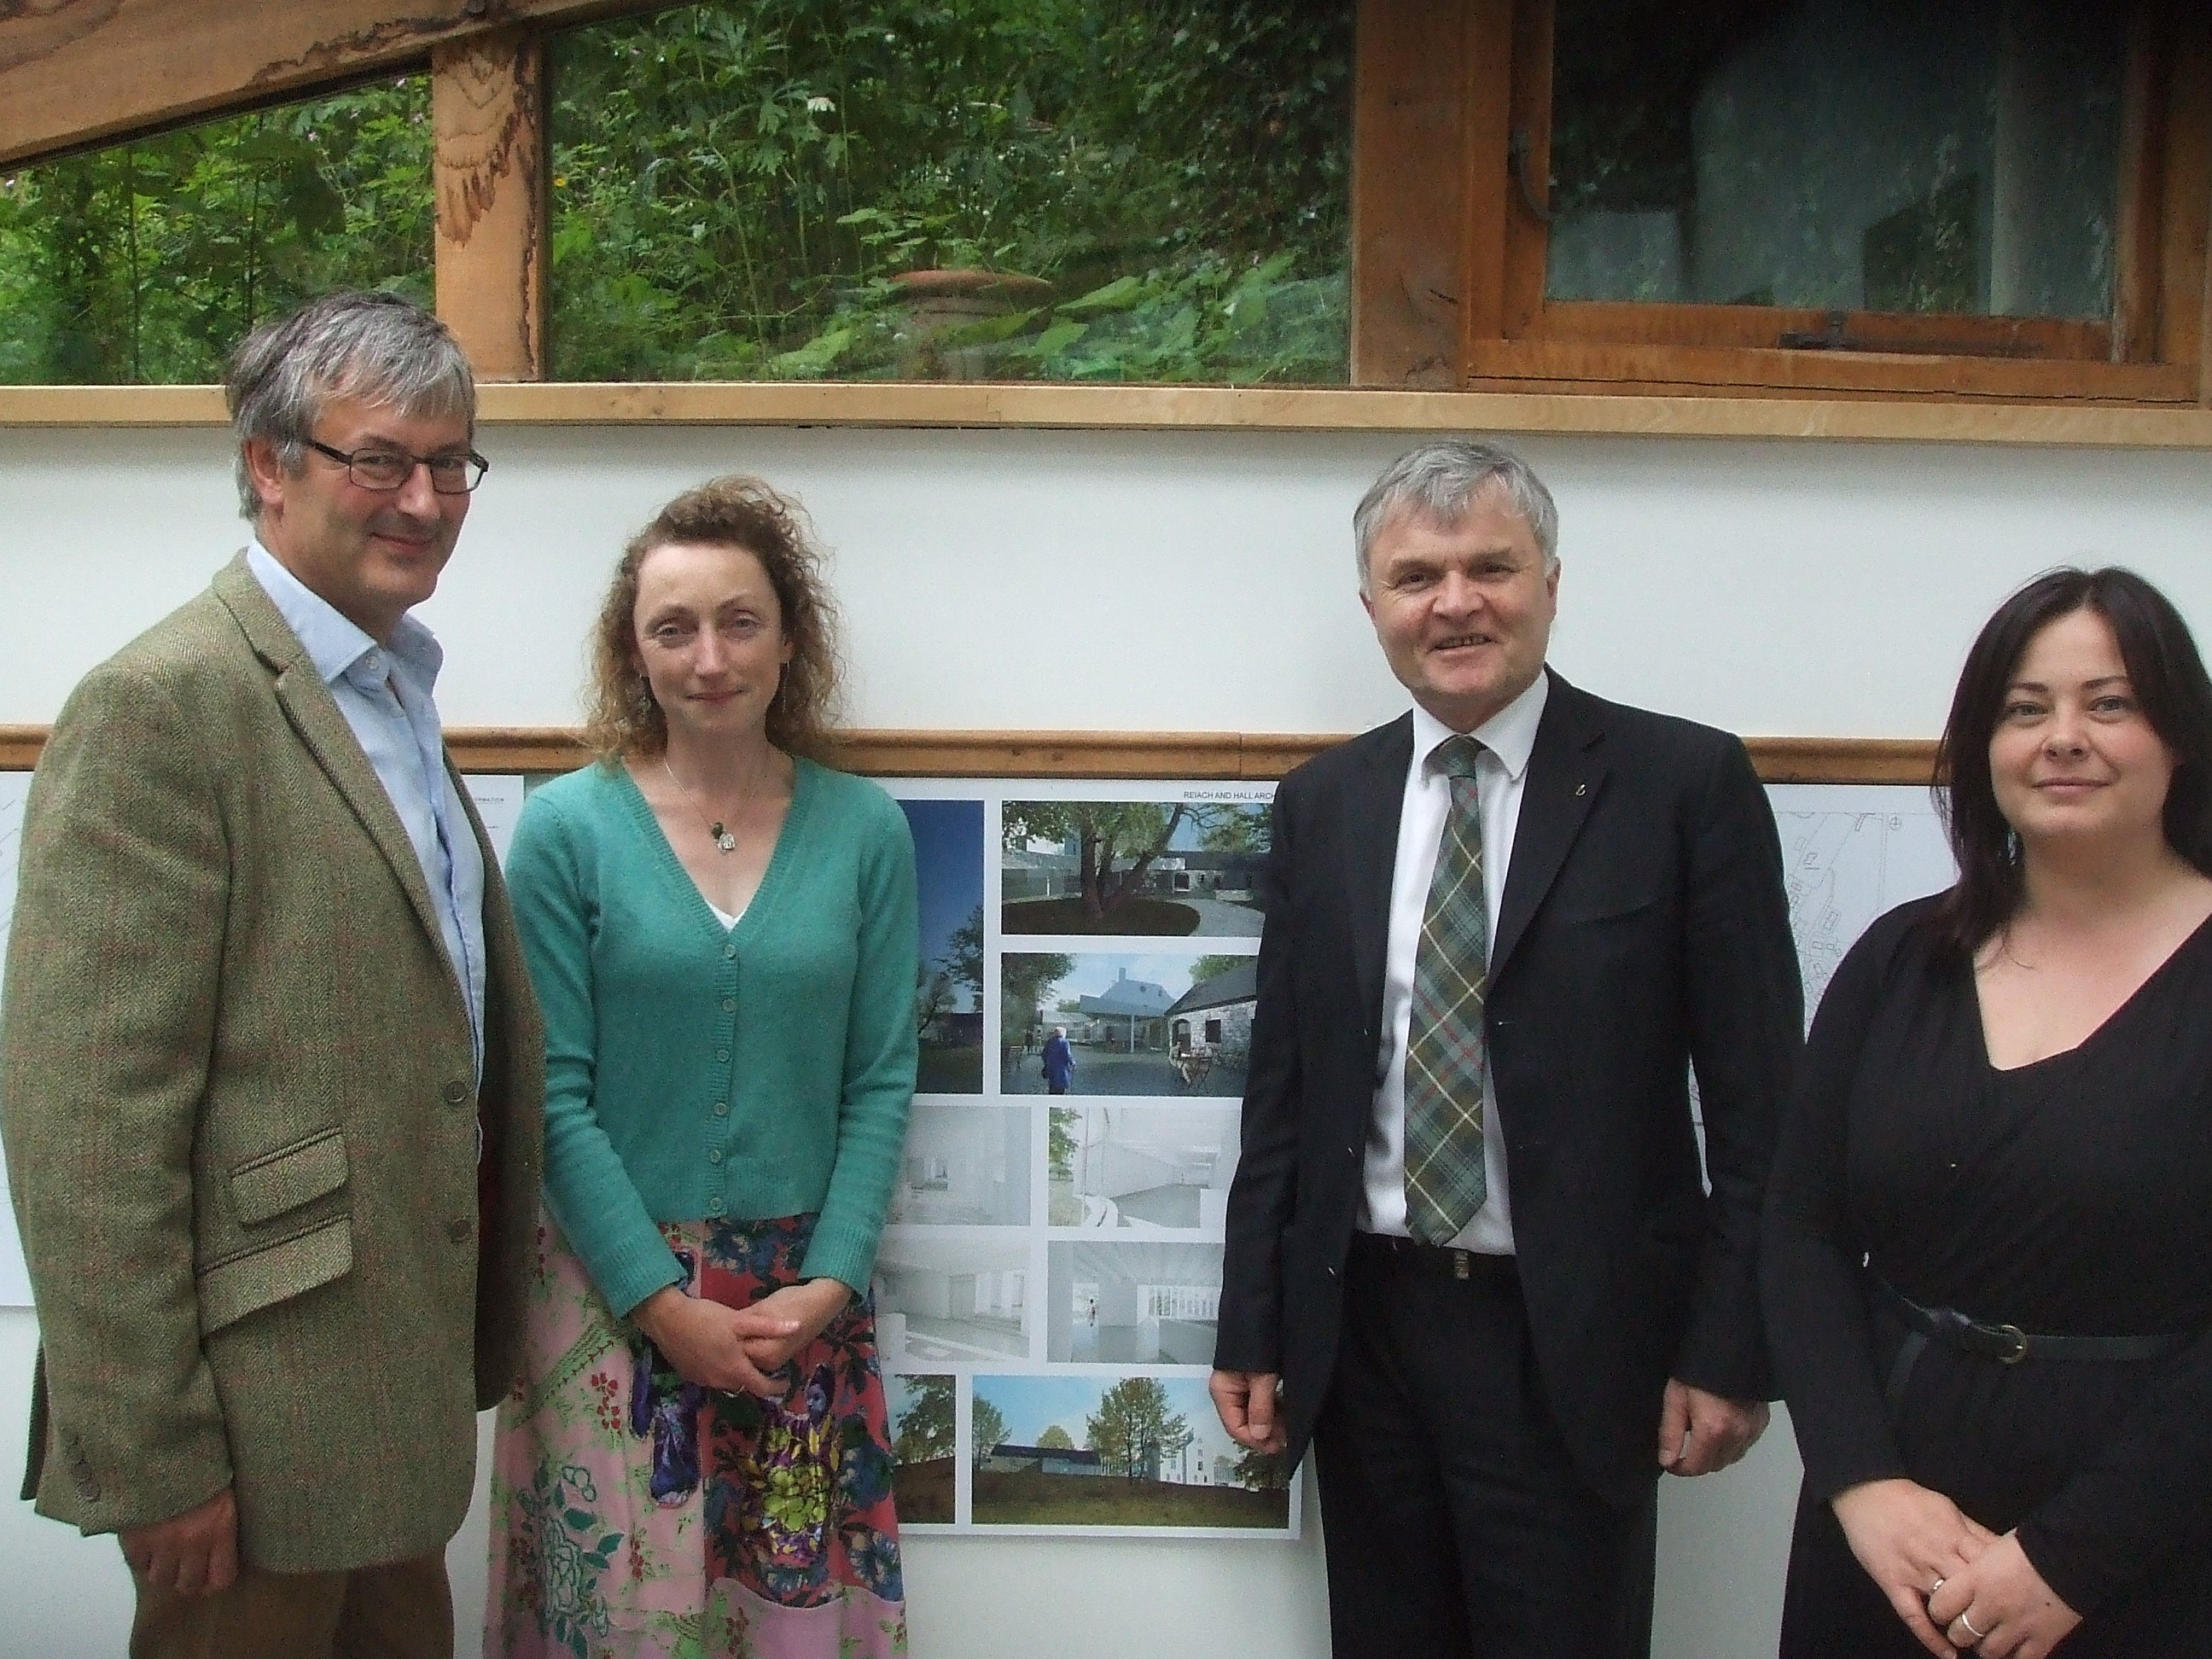 Mike Mackenzie with Dr Sharon Webb and colleagues at Kilmartin Museum